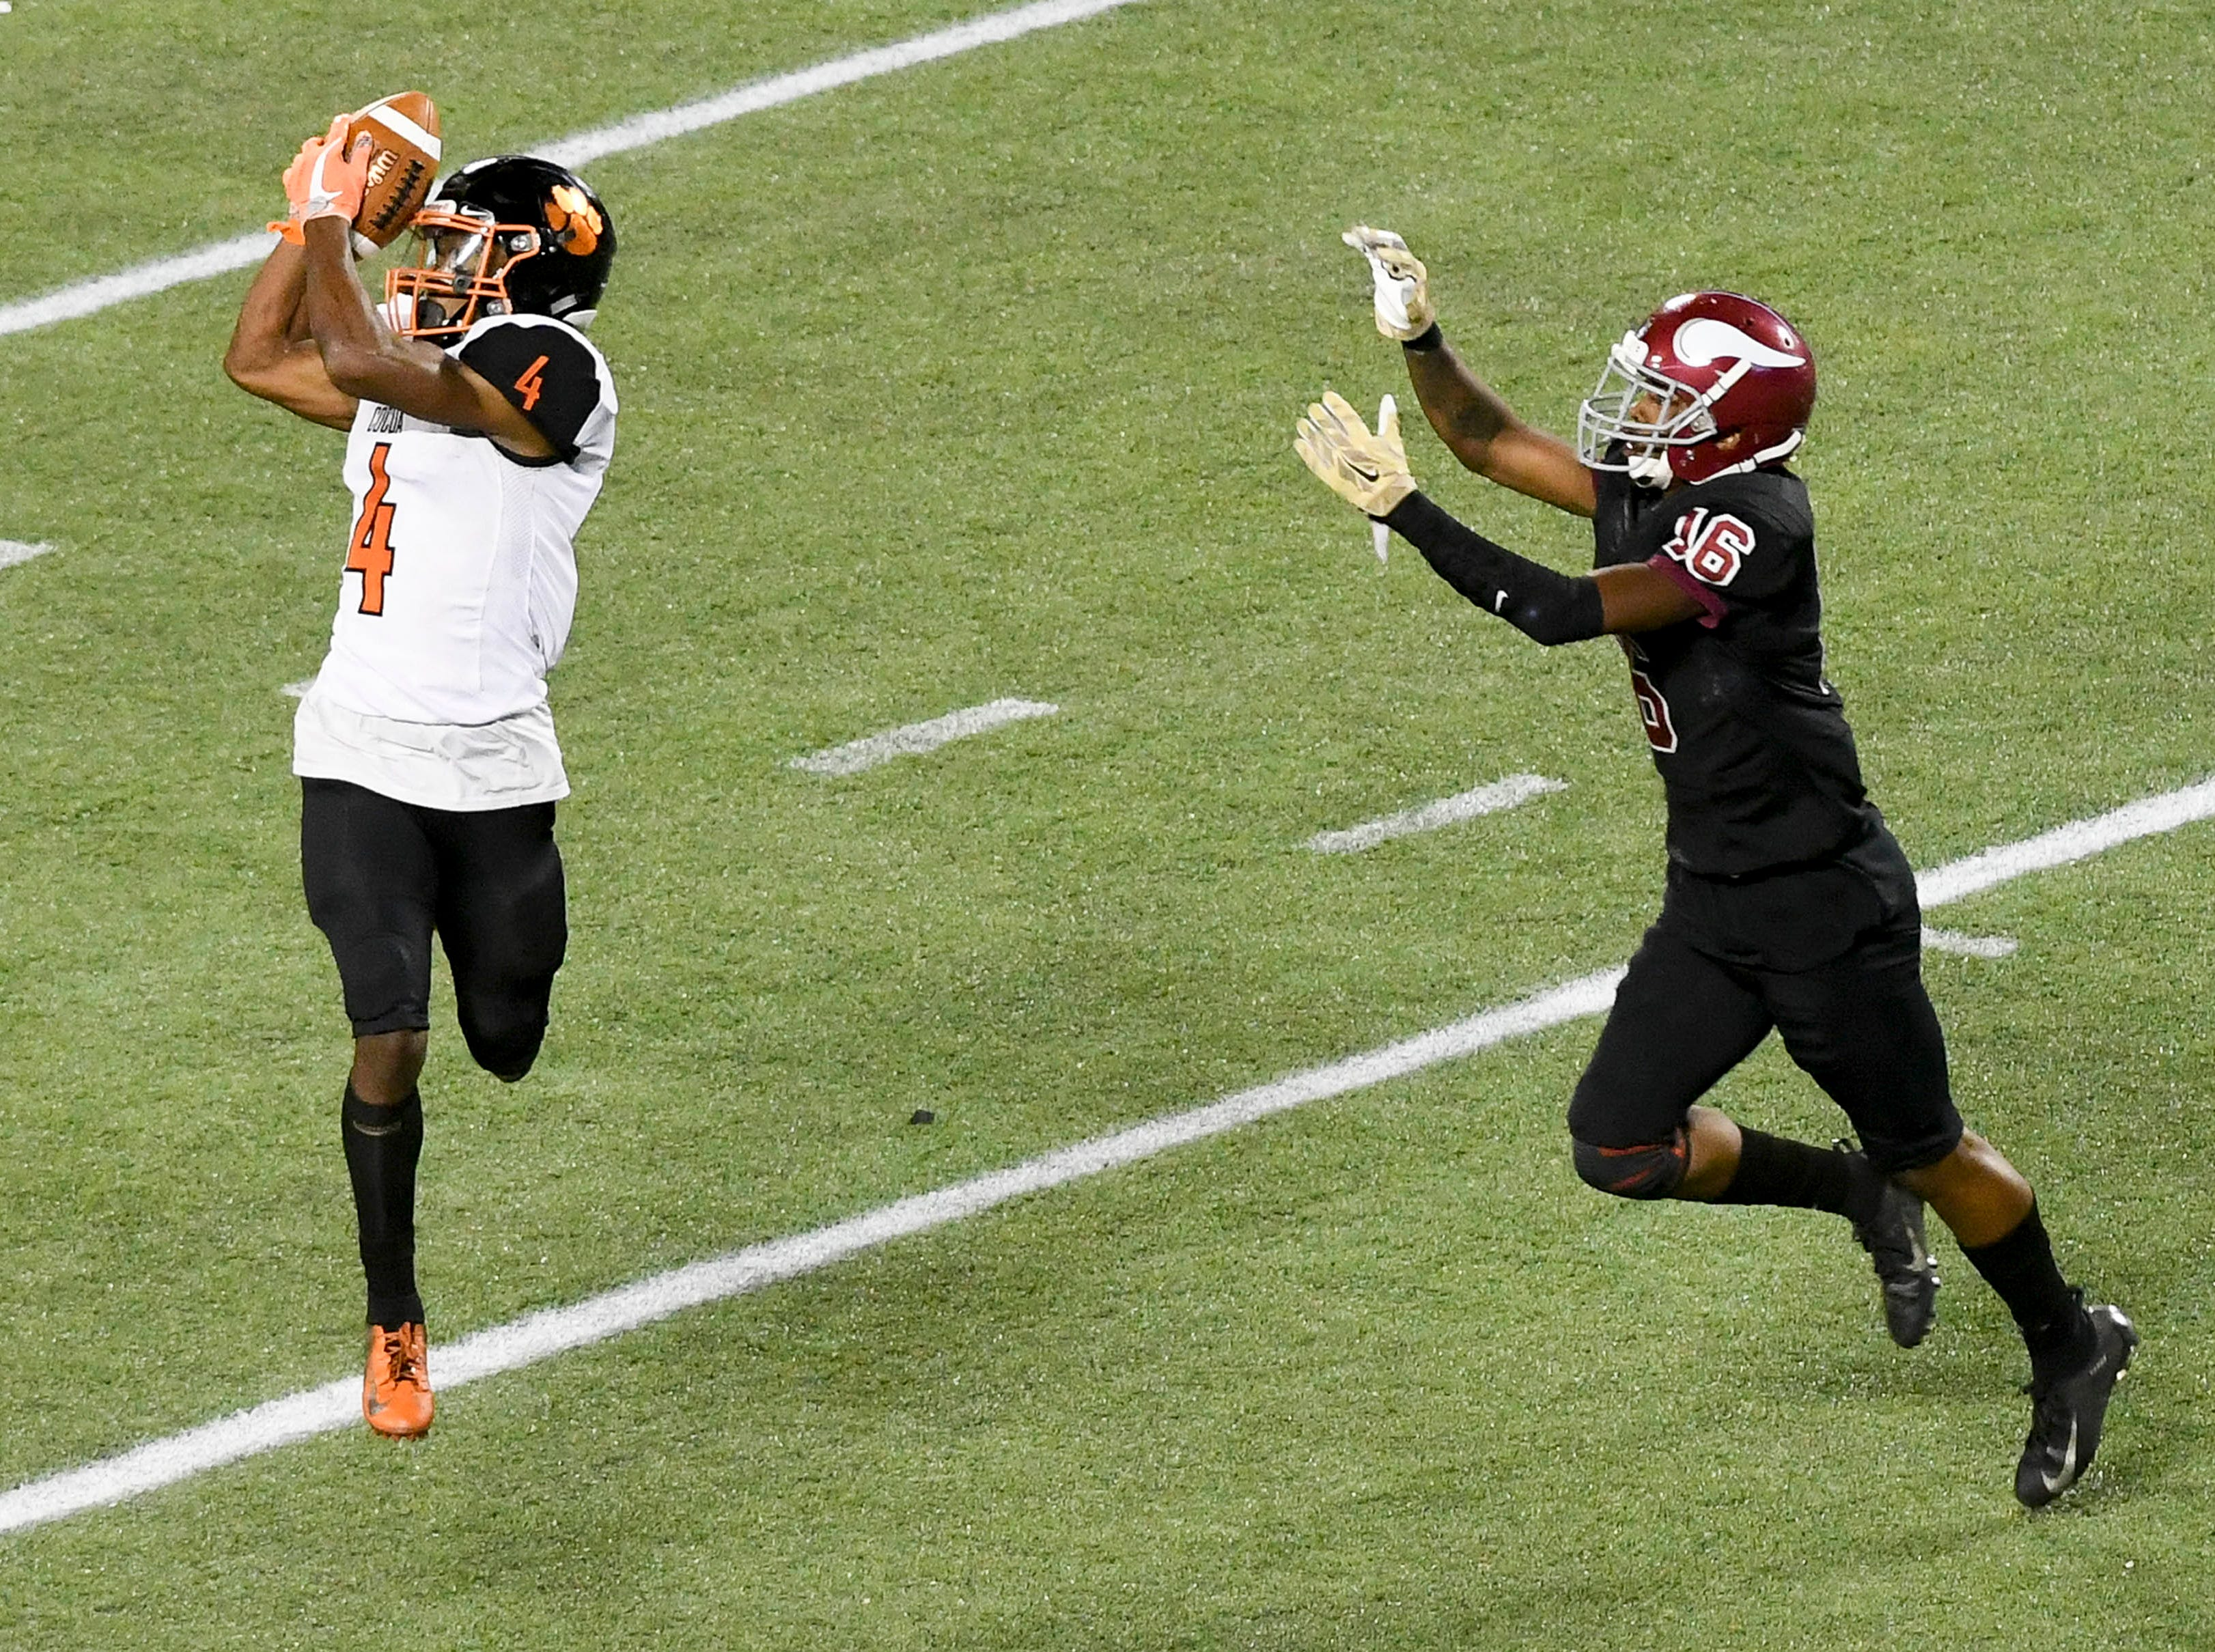 Willie Gaines of Cocoa catches a pass in front of Raines defender James Tarver, Jr. during Thursday's Class 4A football state championship.